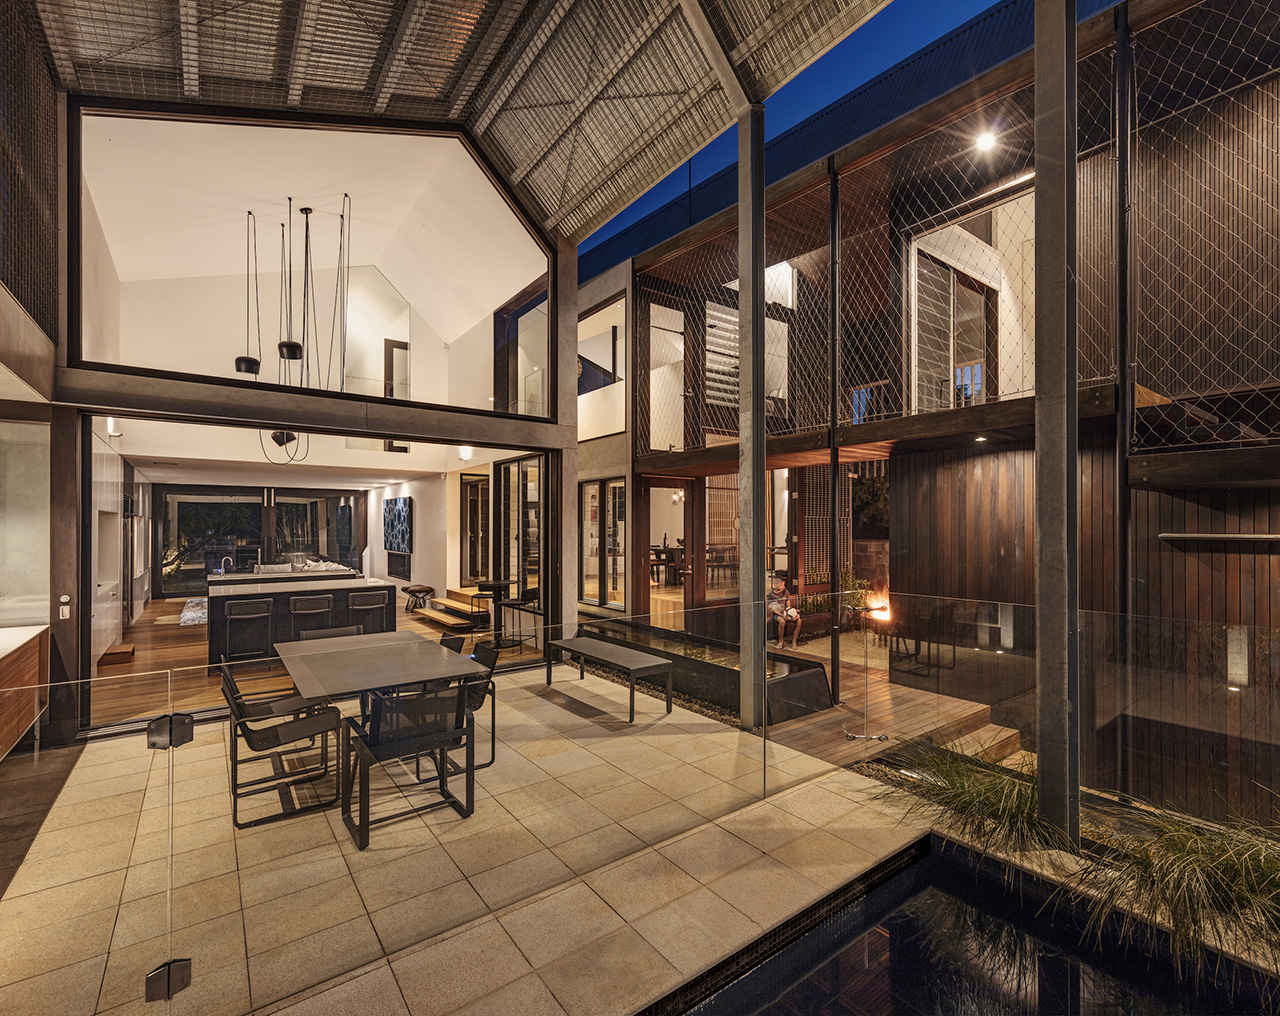 Outdoor dining area with a view of the outdoor pool and also a passive view of the upstairs bedrooms seamlessly integrated with the walkway.